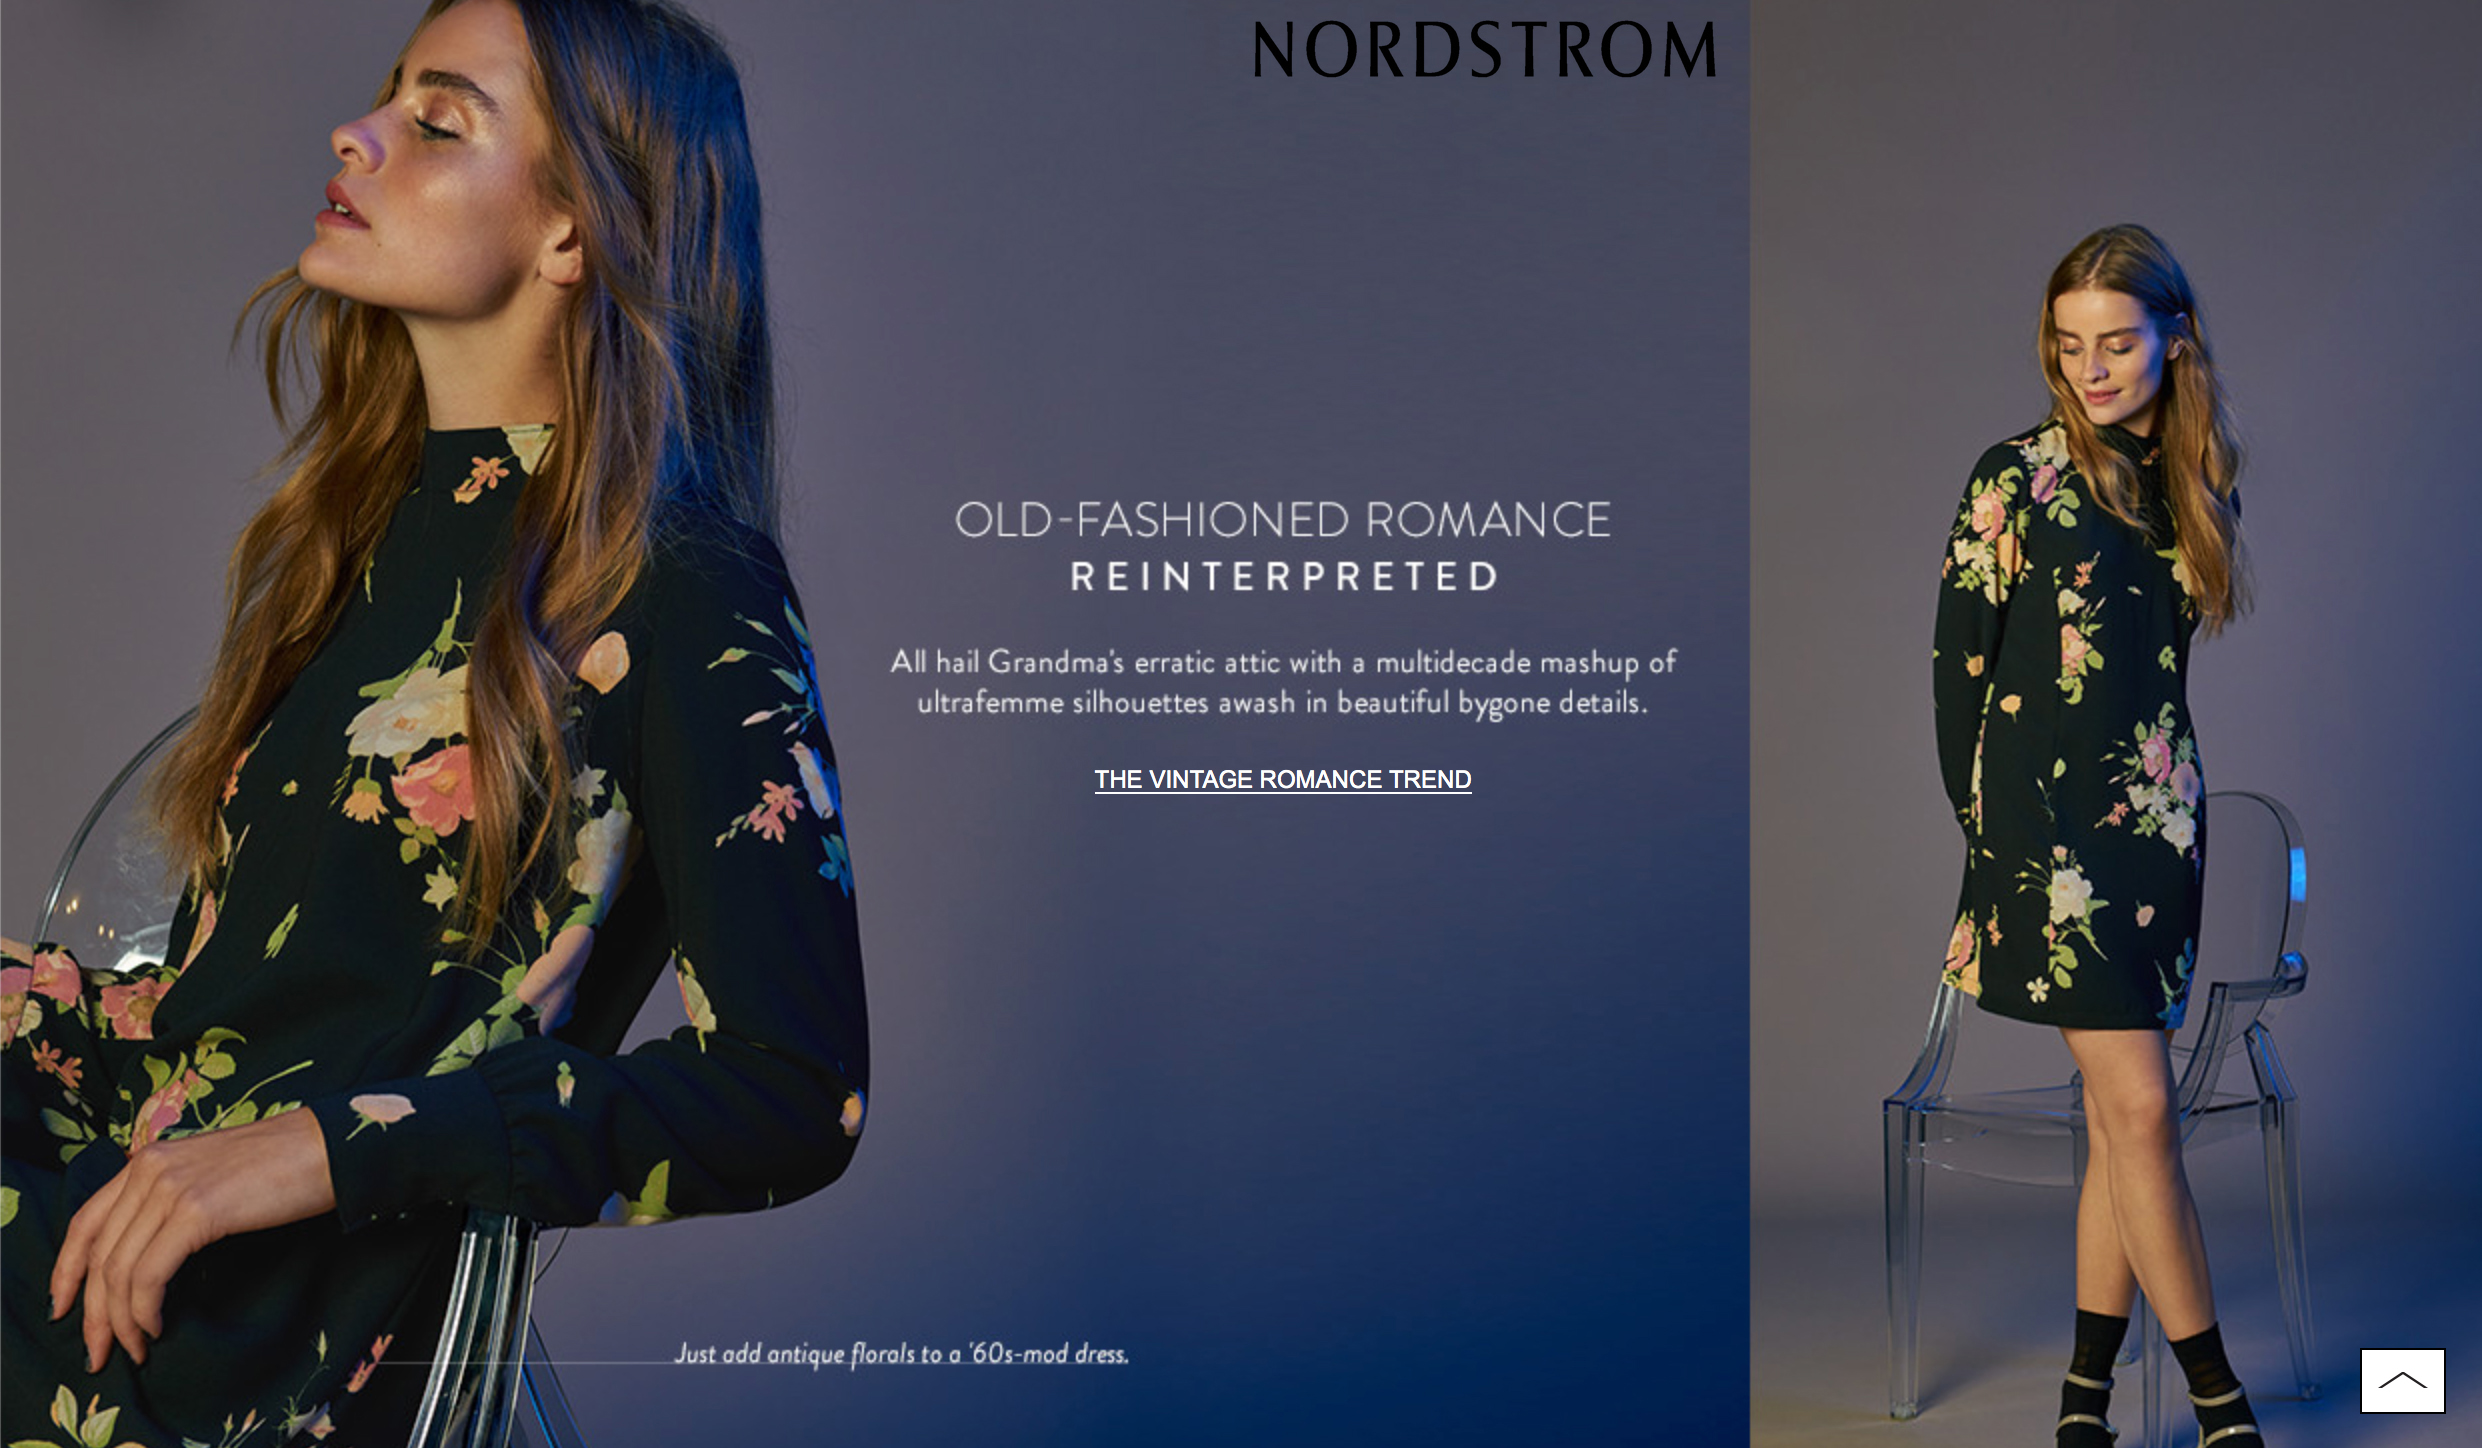 nordstrom website 2.jpg